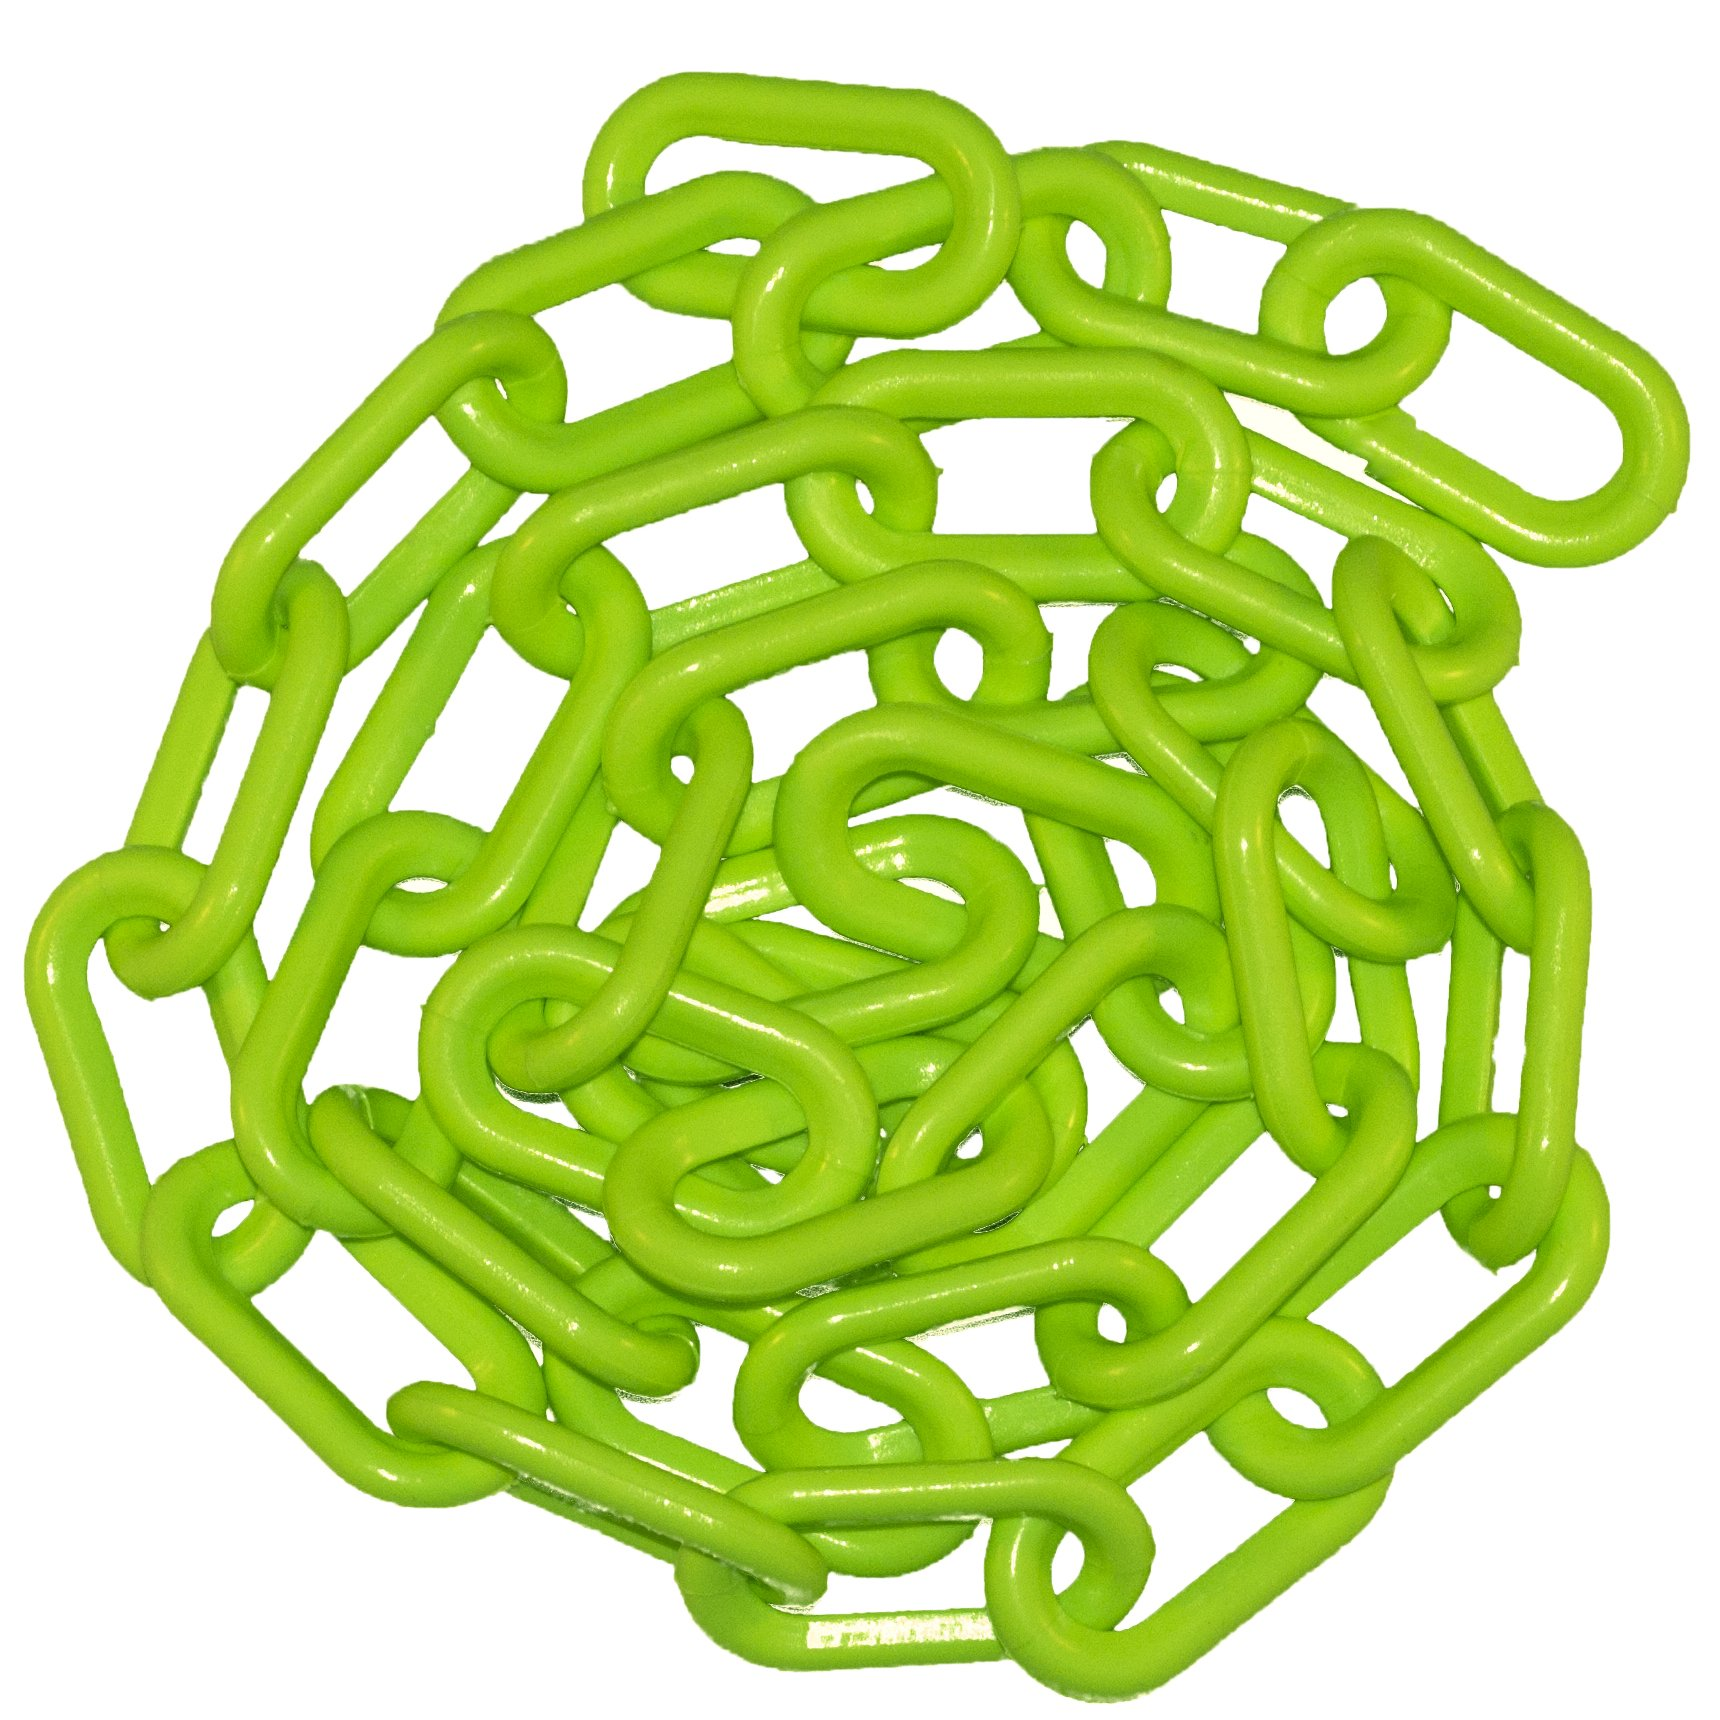 Mr. Chain 50014-25 Plastic Barrier Chain, High Density Polyethylene with UV Inhibitors, 2'' Link x  25', Green